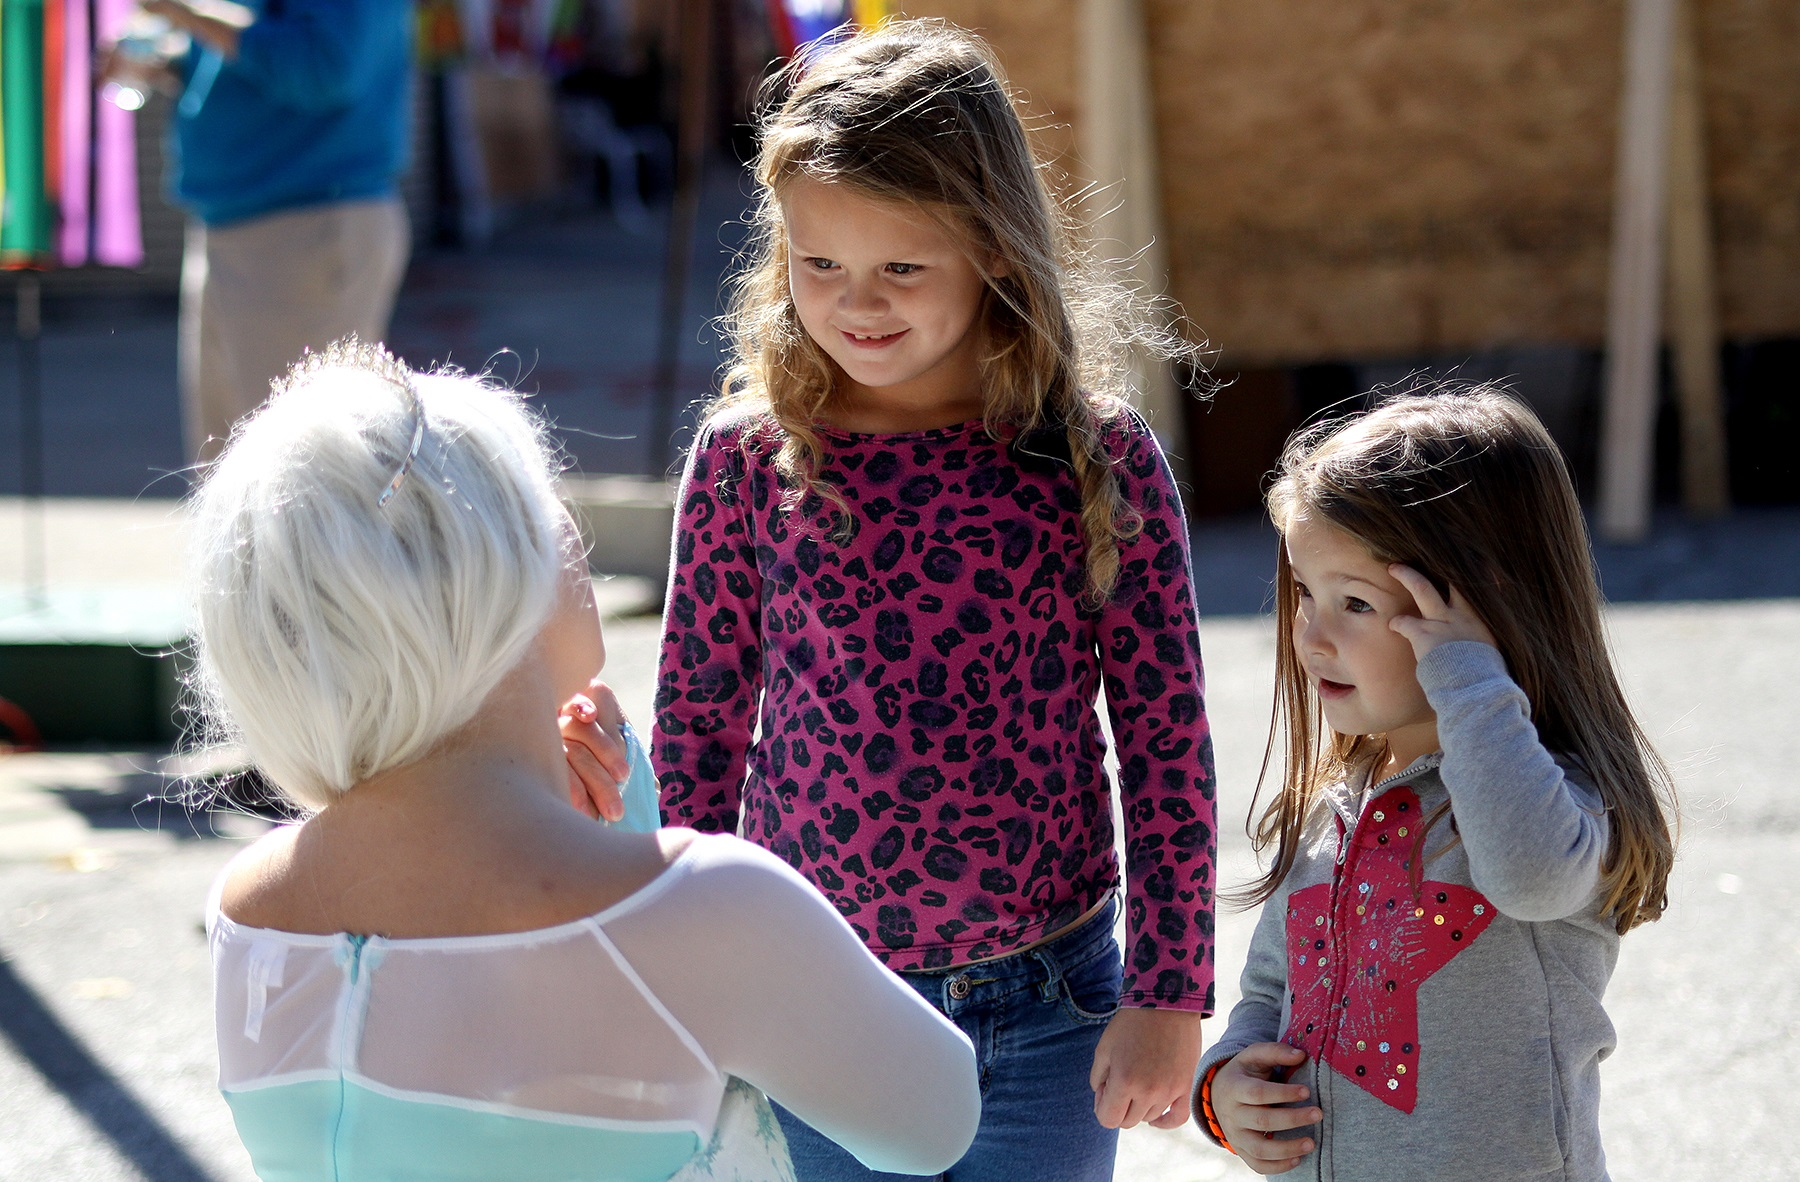 A look of wonder passes over the faces of two young ladies meeting the heroine of the hit children's movie Frozen.